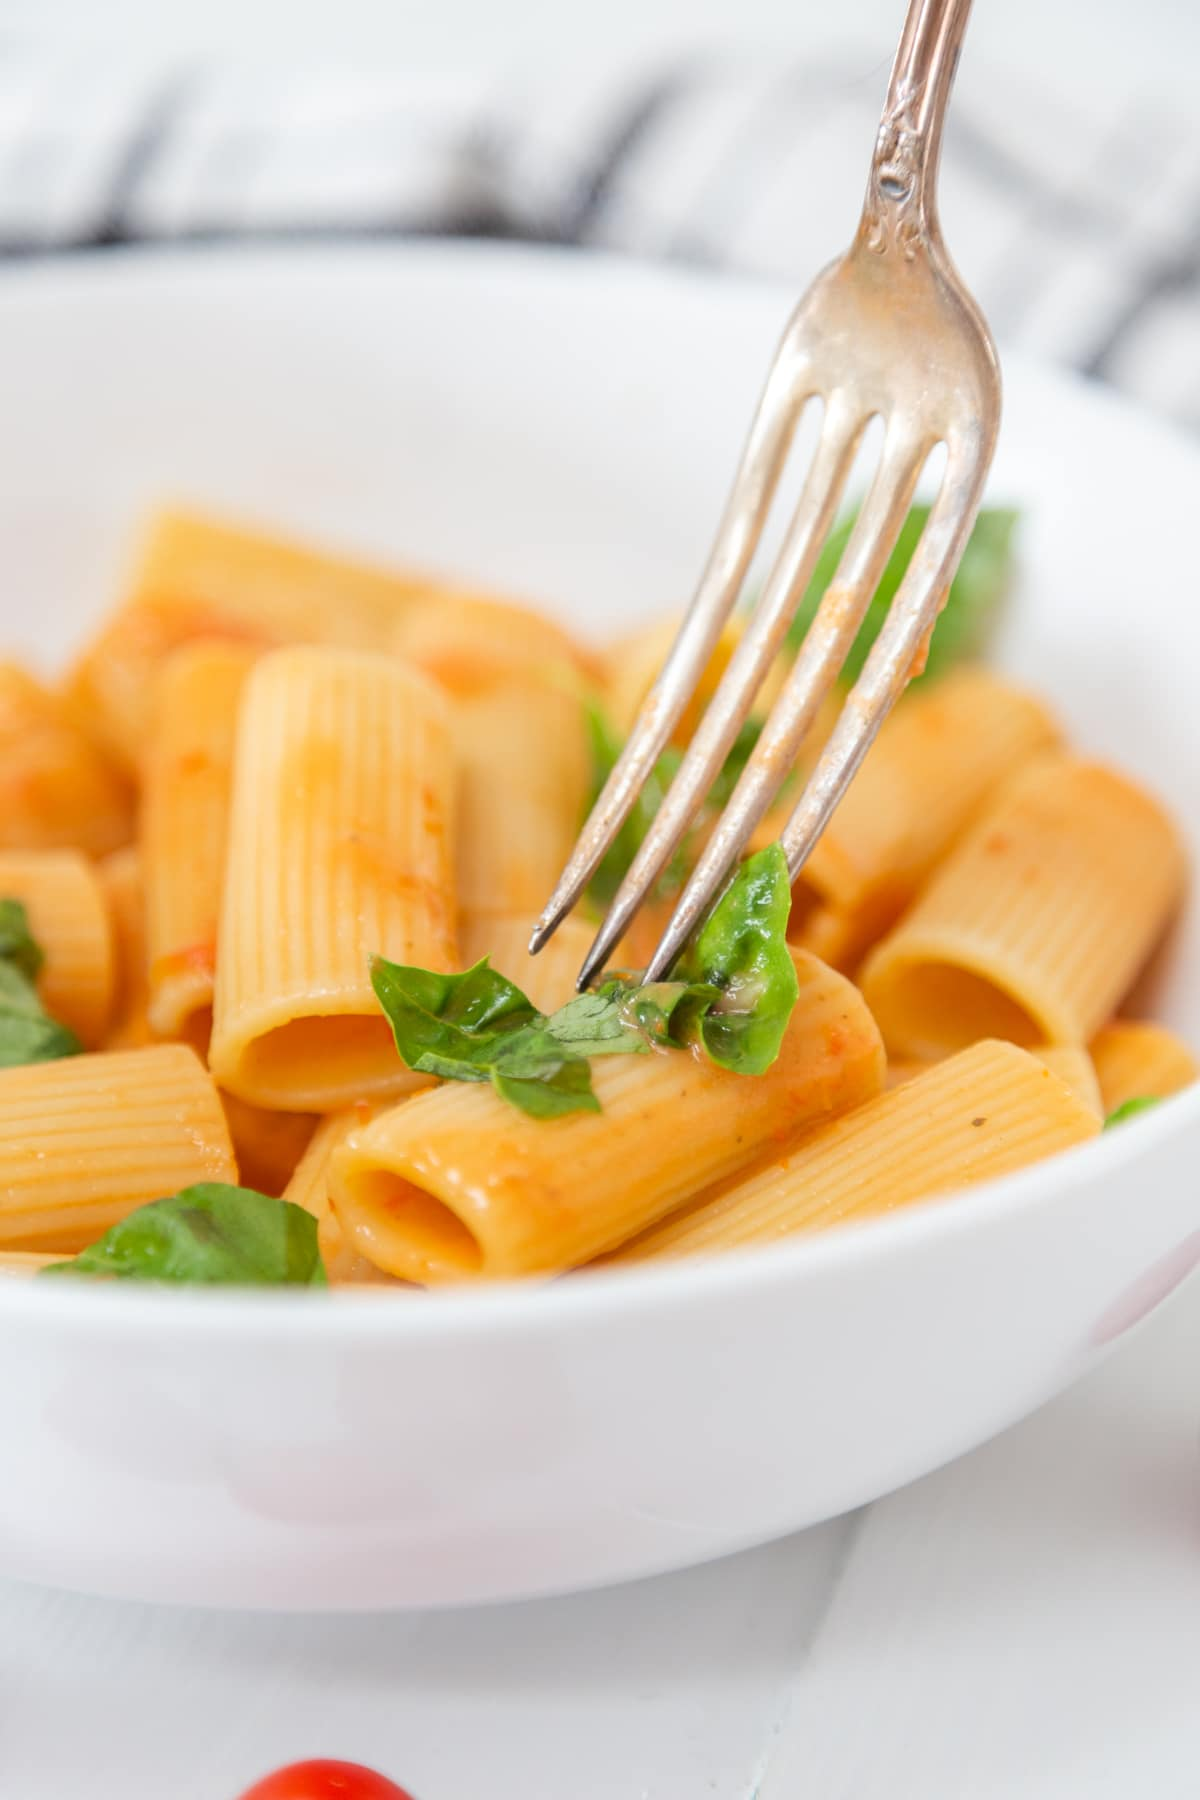 A silver fork piercing a piece of rigatoni with a creamy tomato sauce.